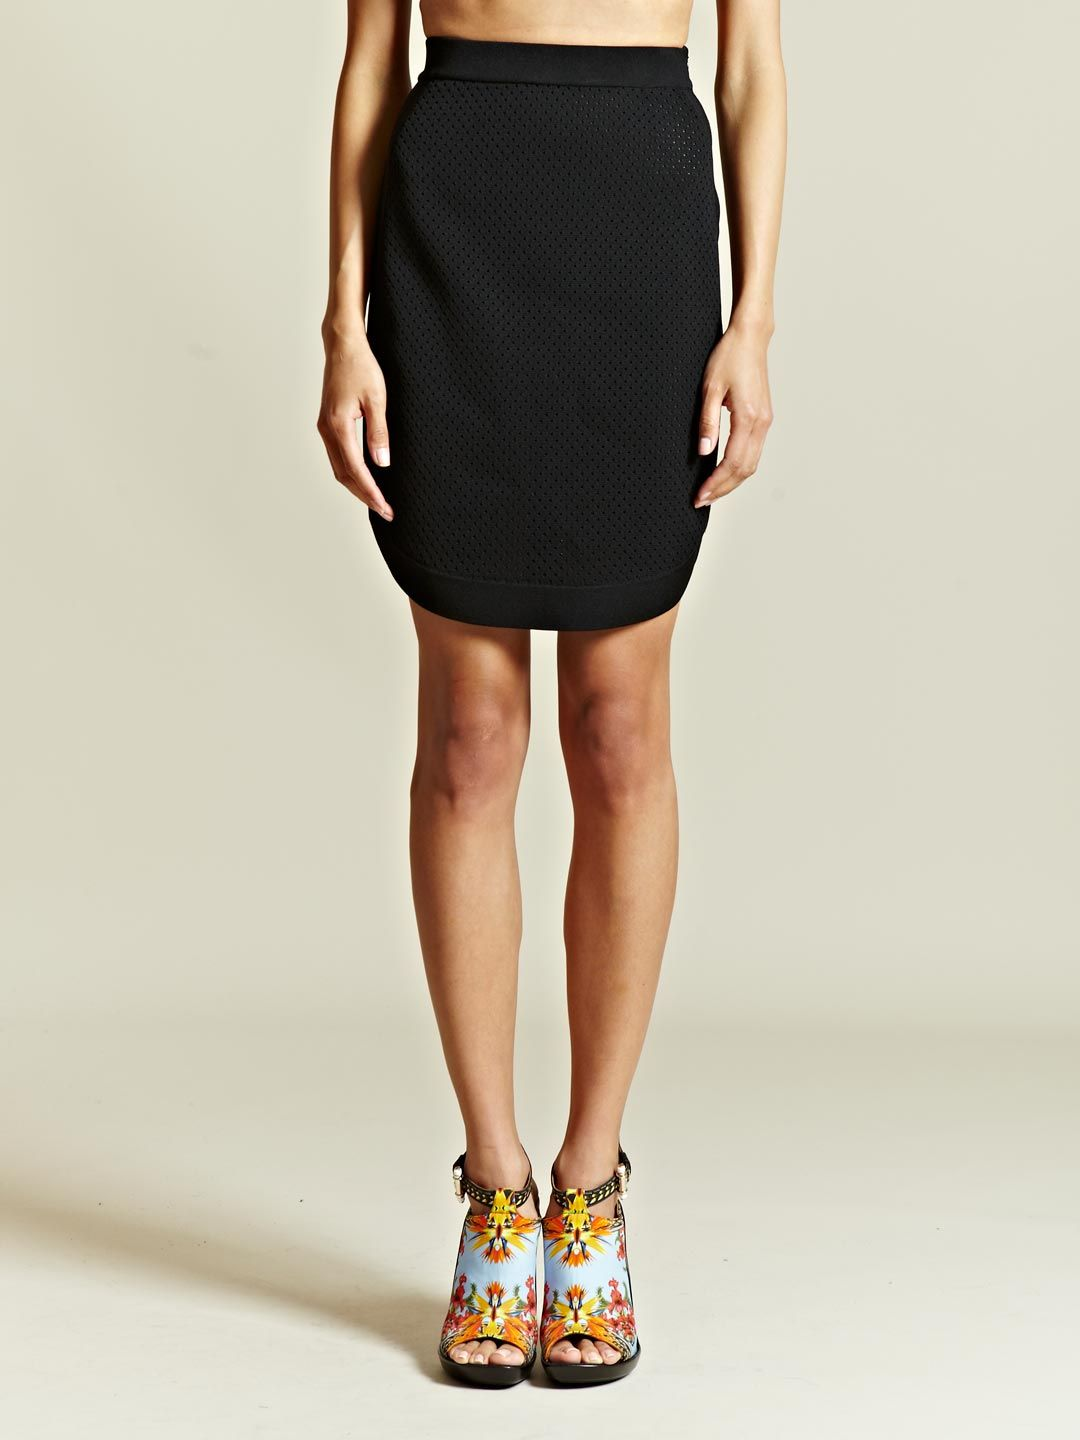 Givenchy Women's Perforated Tablet Skirt | LN-CC